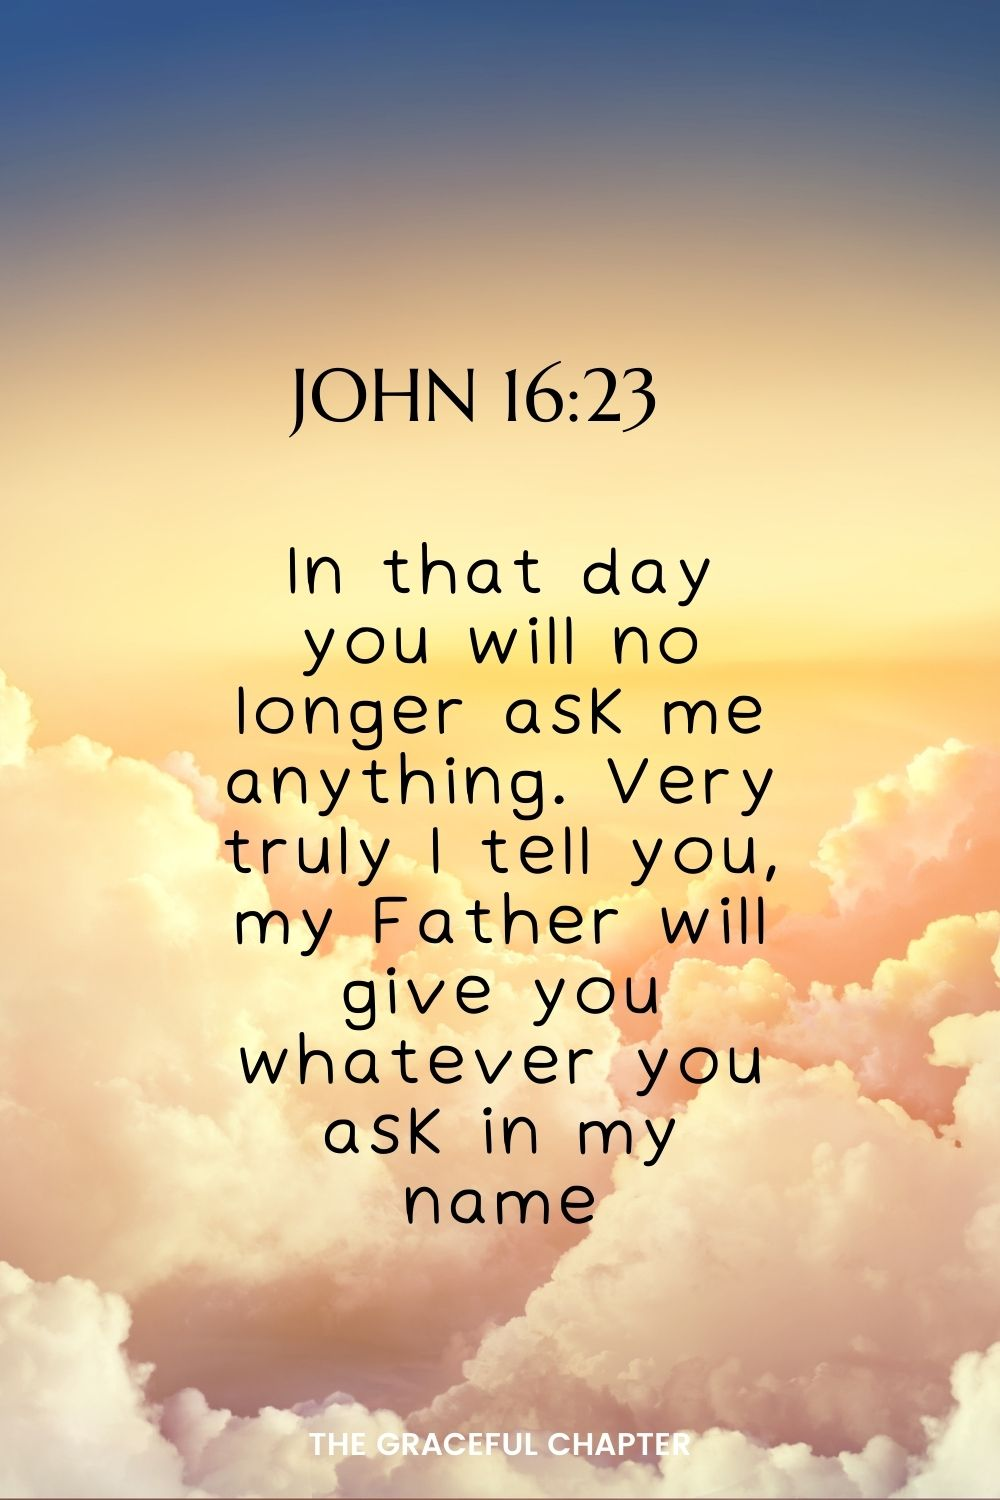 In that day you will no longer ask me anything. Very truly I tell you, my Father will give you whatever you ask in my name. John 16:23